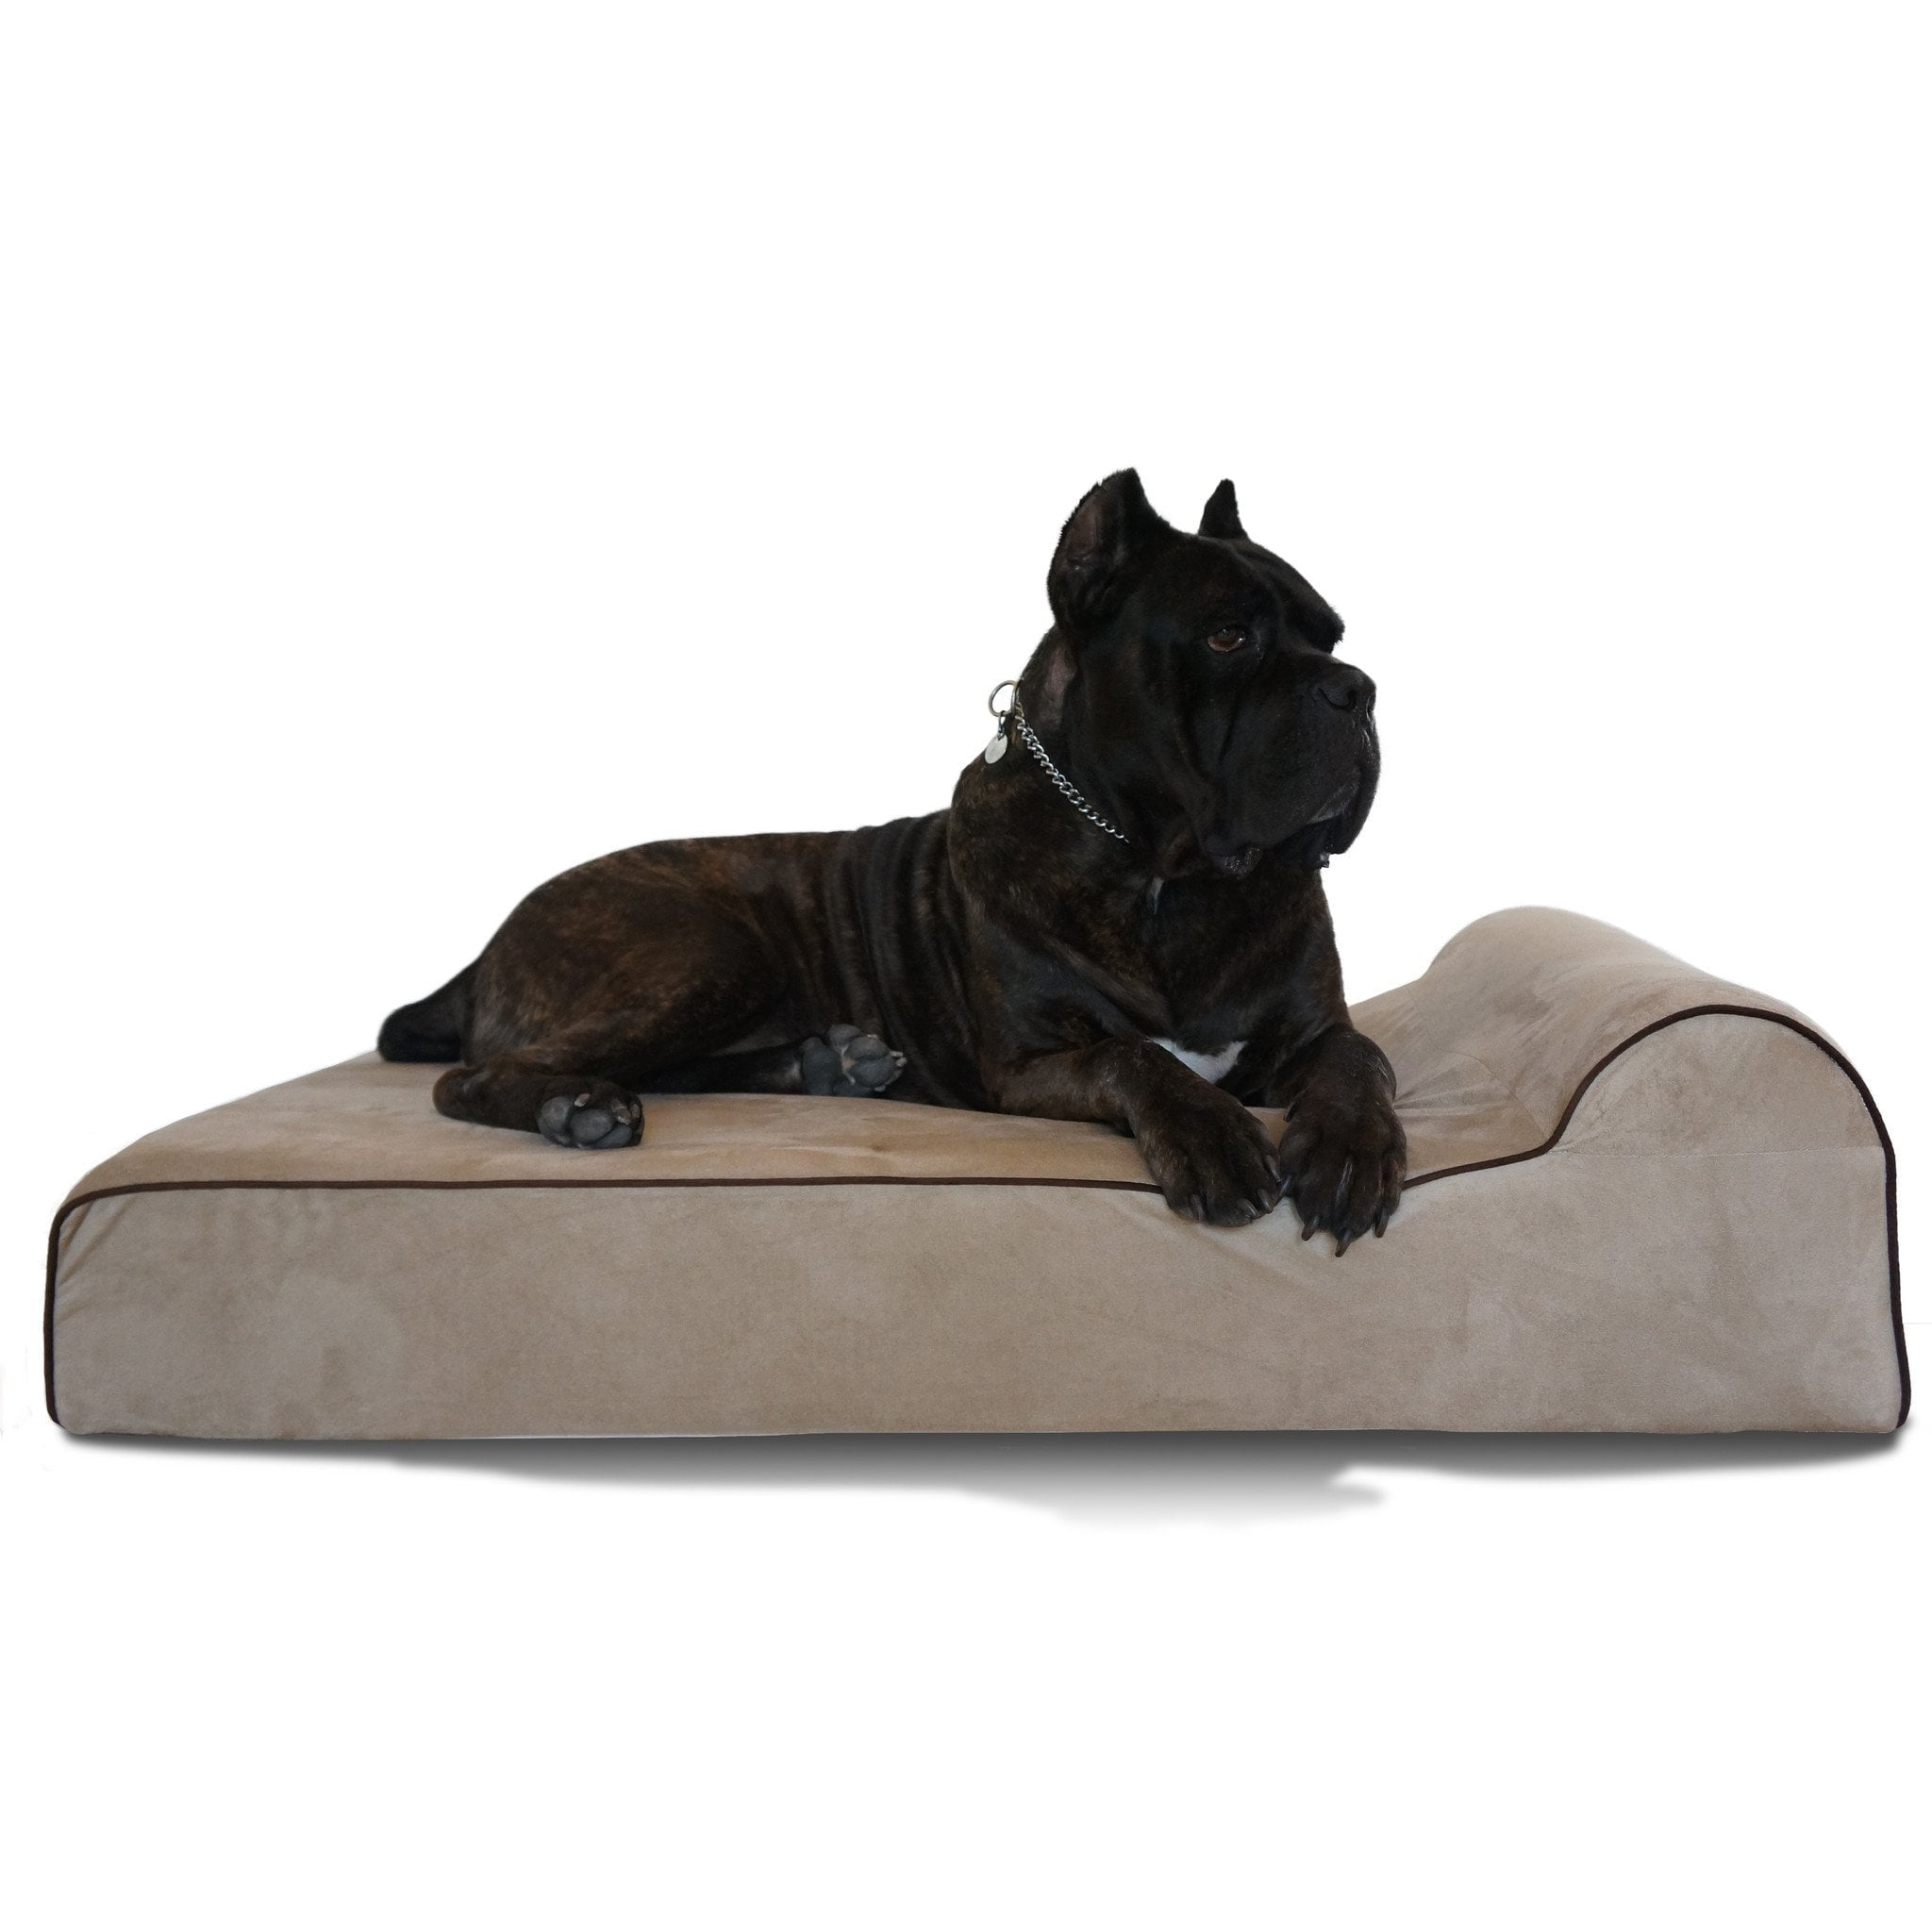 Bully Bed Orthopedic, Washable & Waterproof Big Dog Beds Bully Bed bullybeds.com Large $179.99 - 48